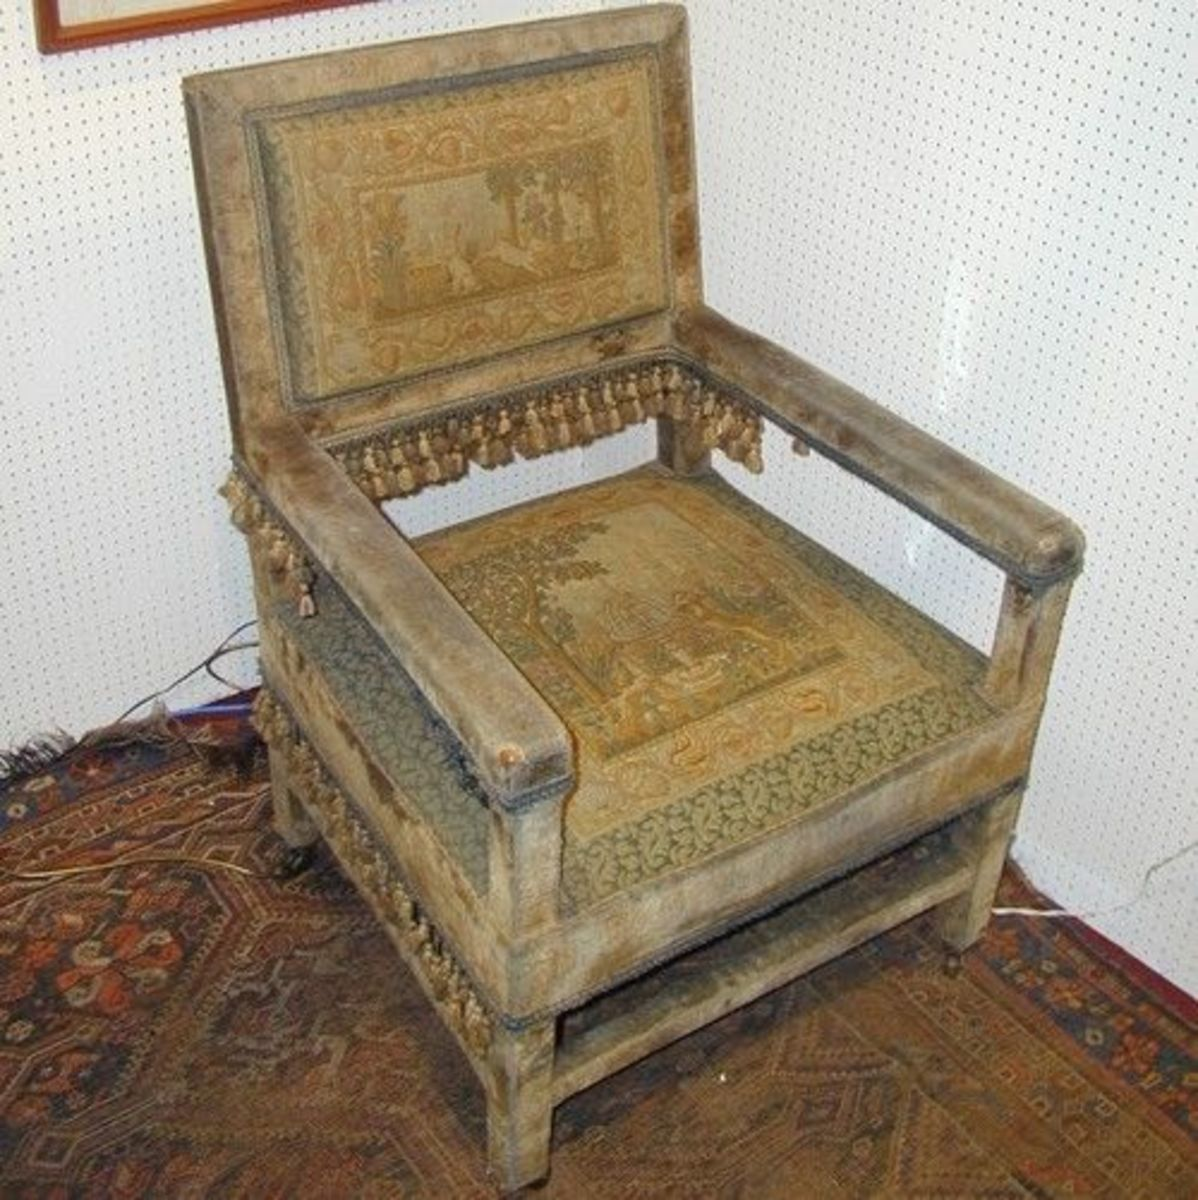 A Distressed (damaged) Antique Armchair Copyright 2004 Carol Fisher